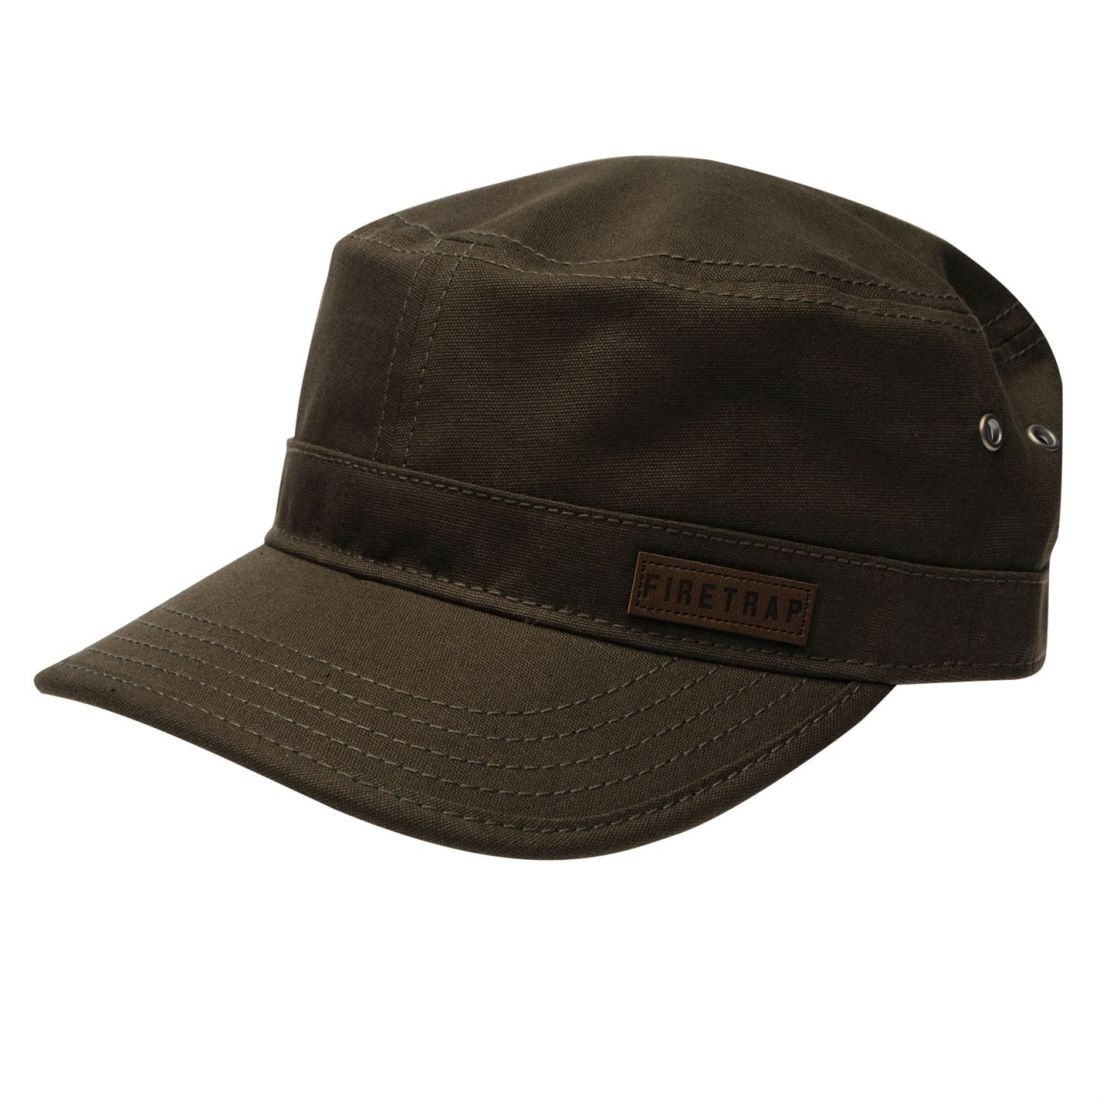 608c89c4 FIRETRAP MENS ARMY Hat Cap Cotton - £6.00 | PicClick UK